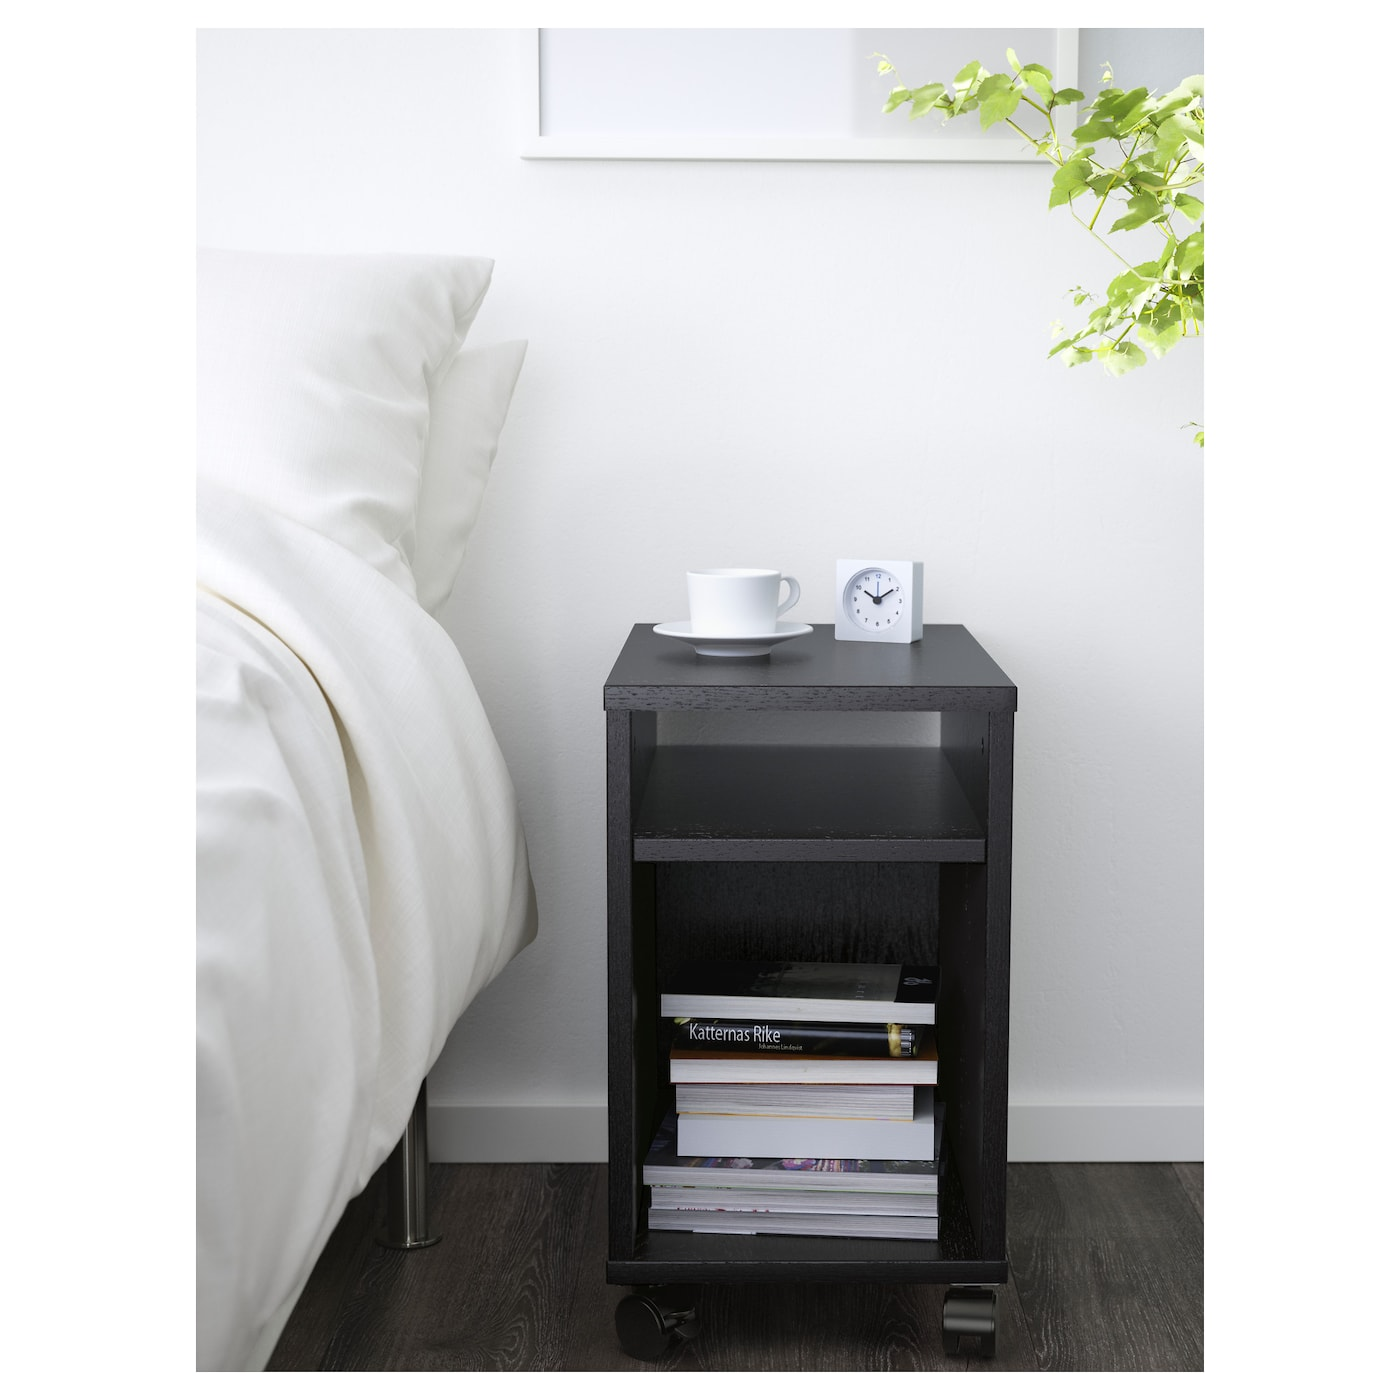 oltedal bedside table black-brown 32x50 cm - ikea